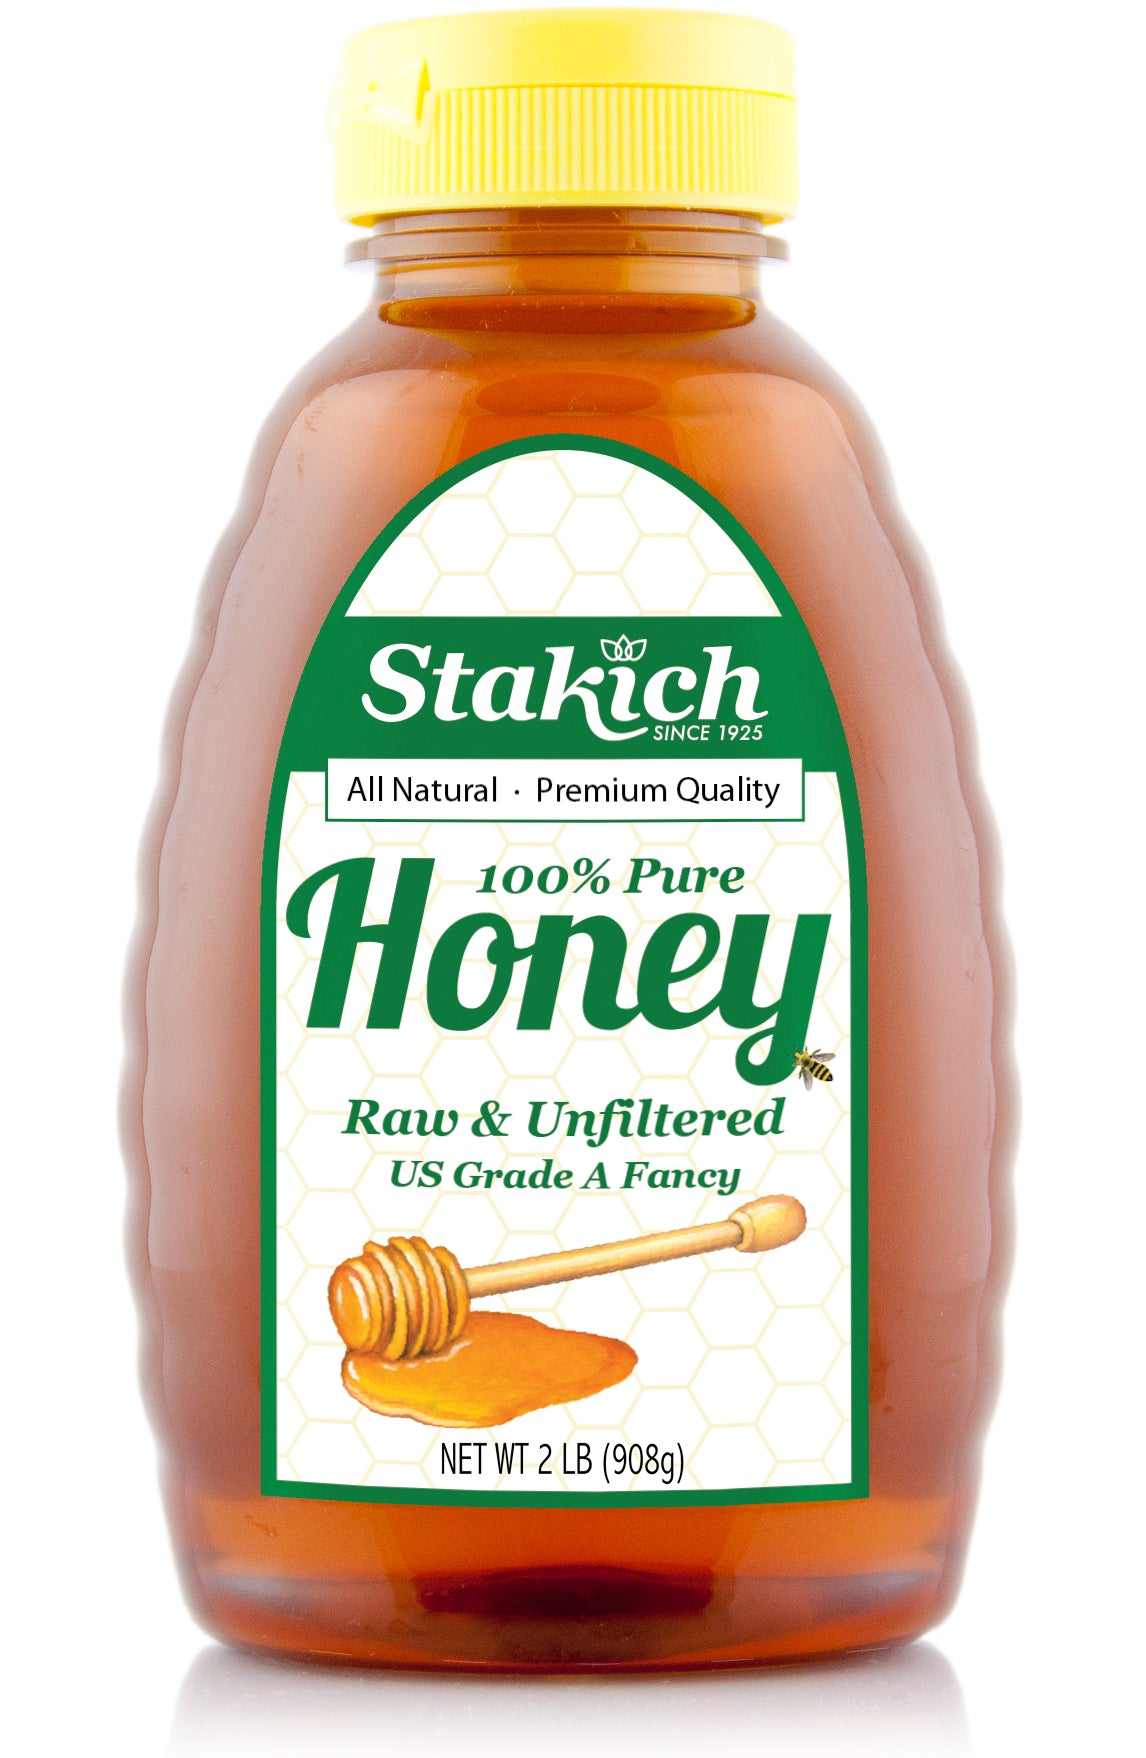 Case of Liquid Raw Honey (2 lb) - Stakich